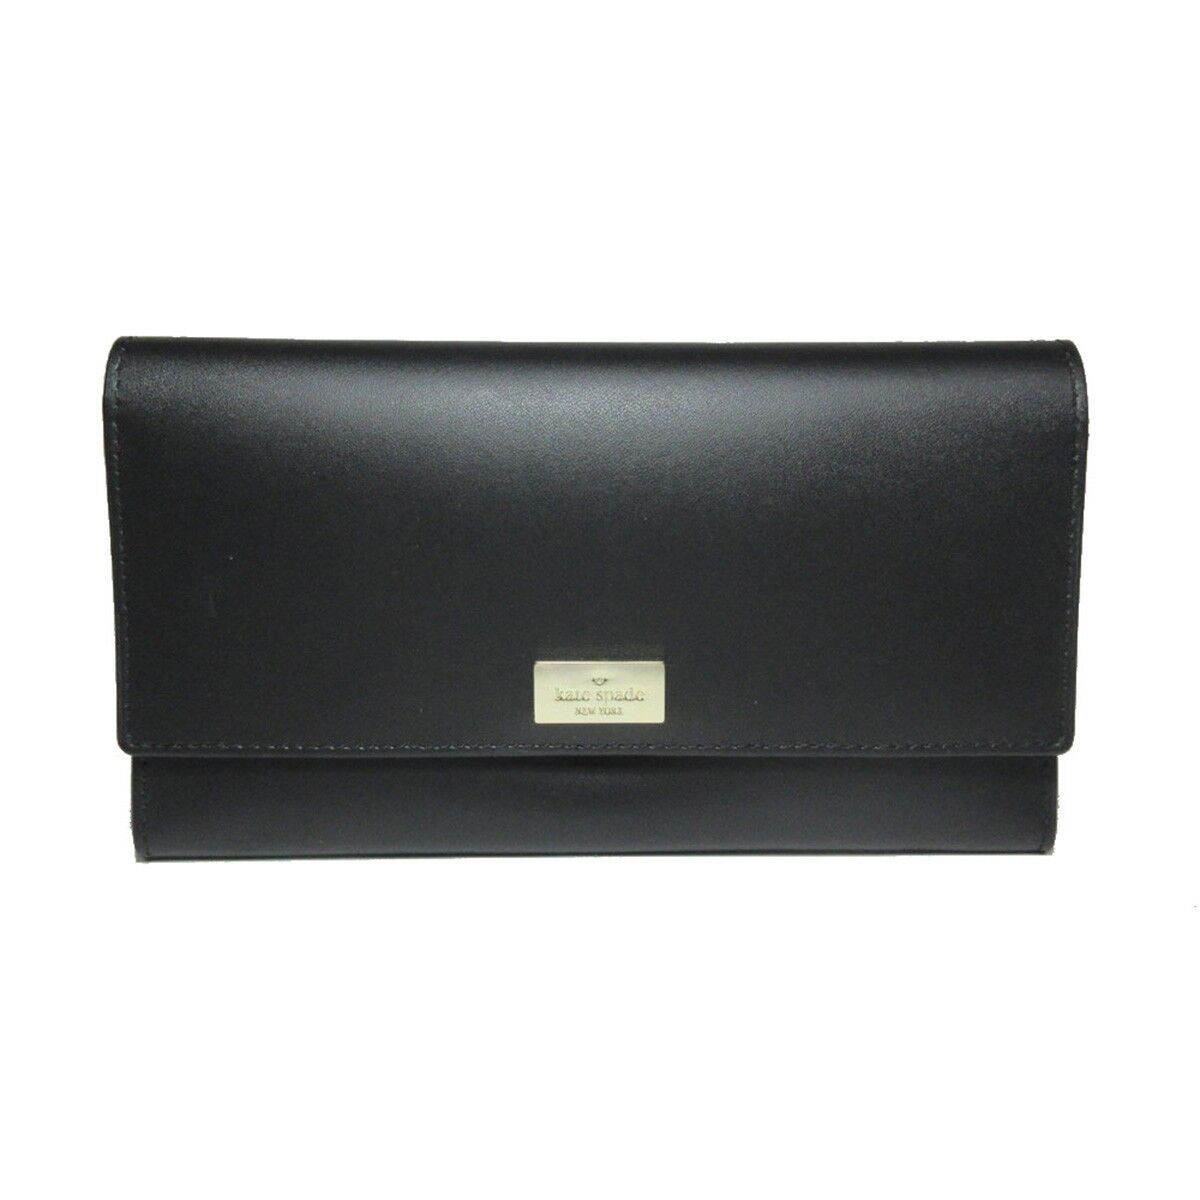 NWT KATE SPADE NEW YORK Putnam Drive CYRA Wallet Black Dolce Coin Gold 4871 NEW